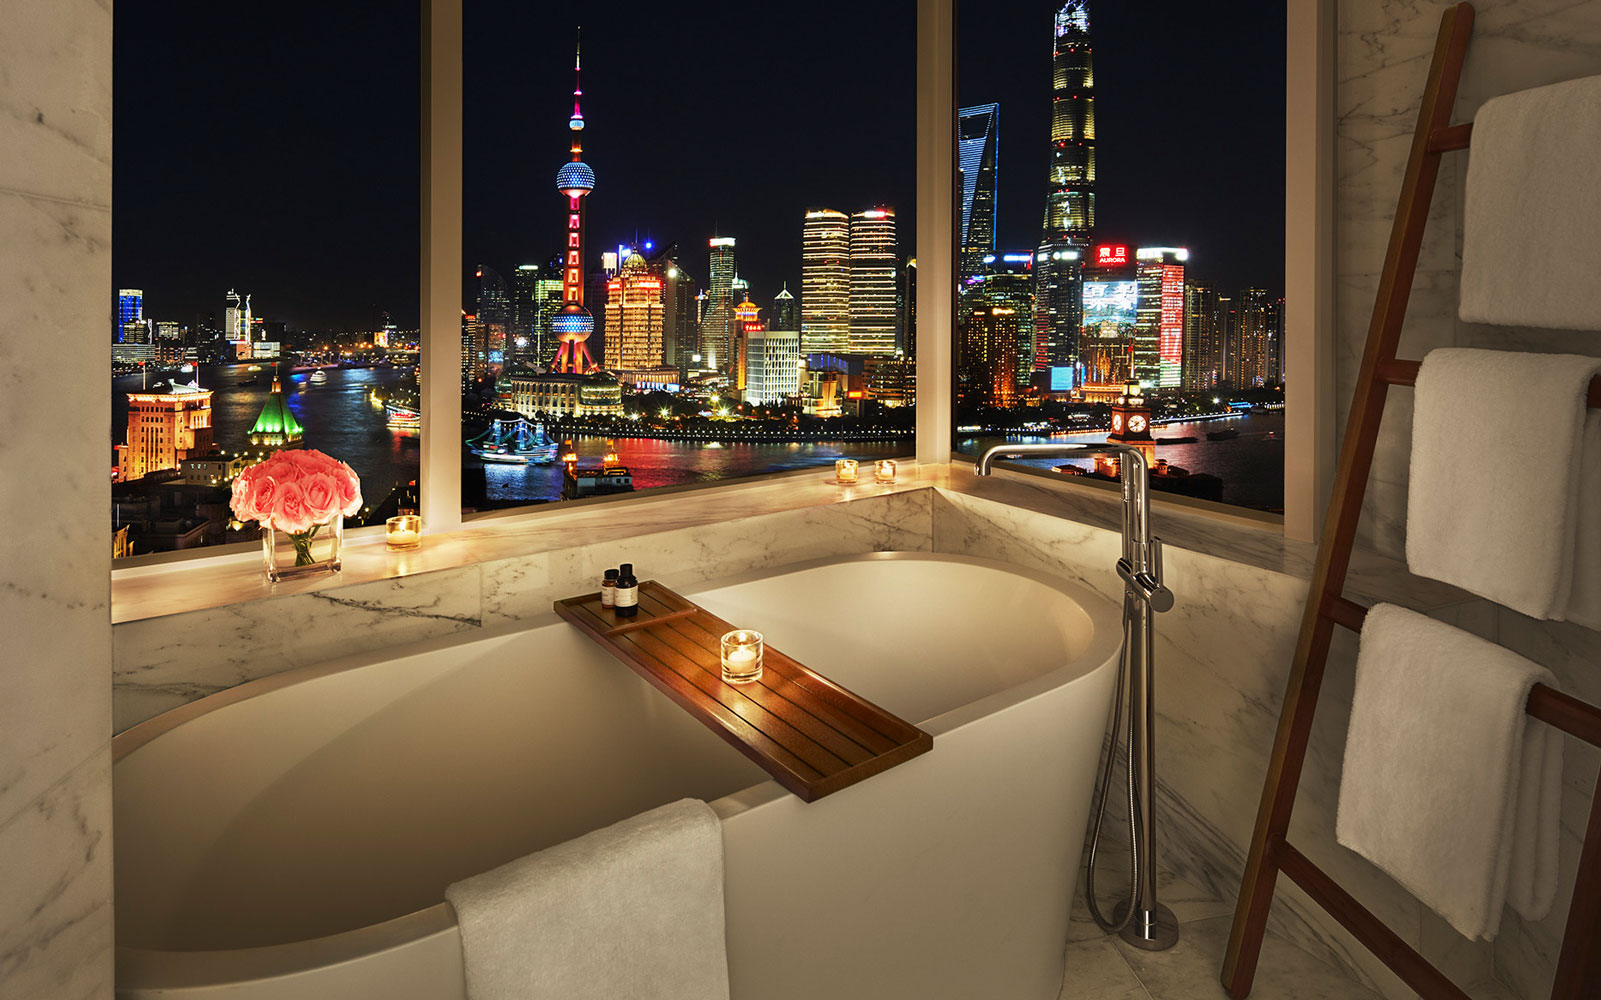 Bathtub at Shanghai EDITION overlooking skyline